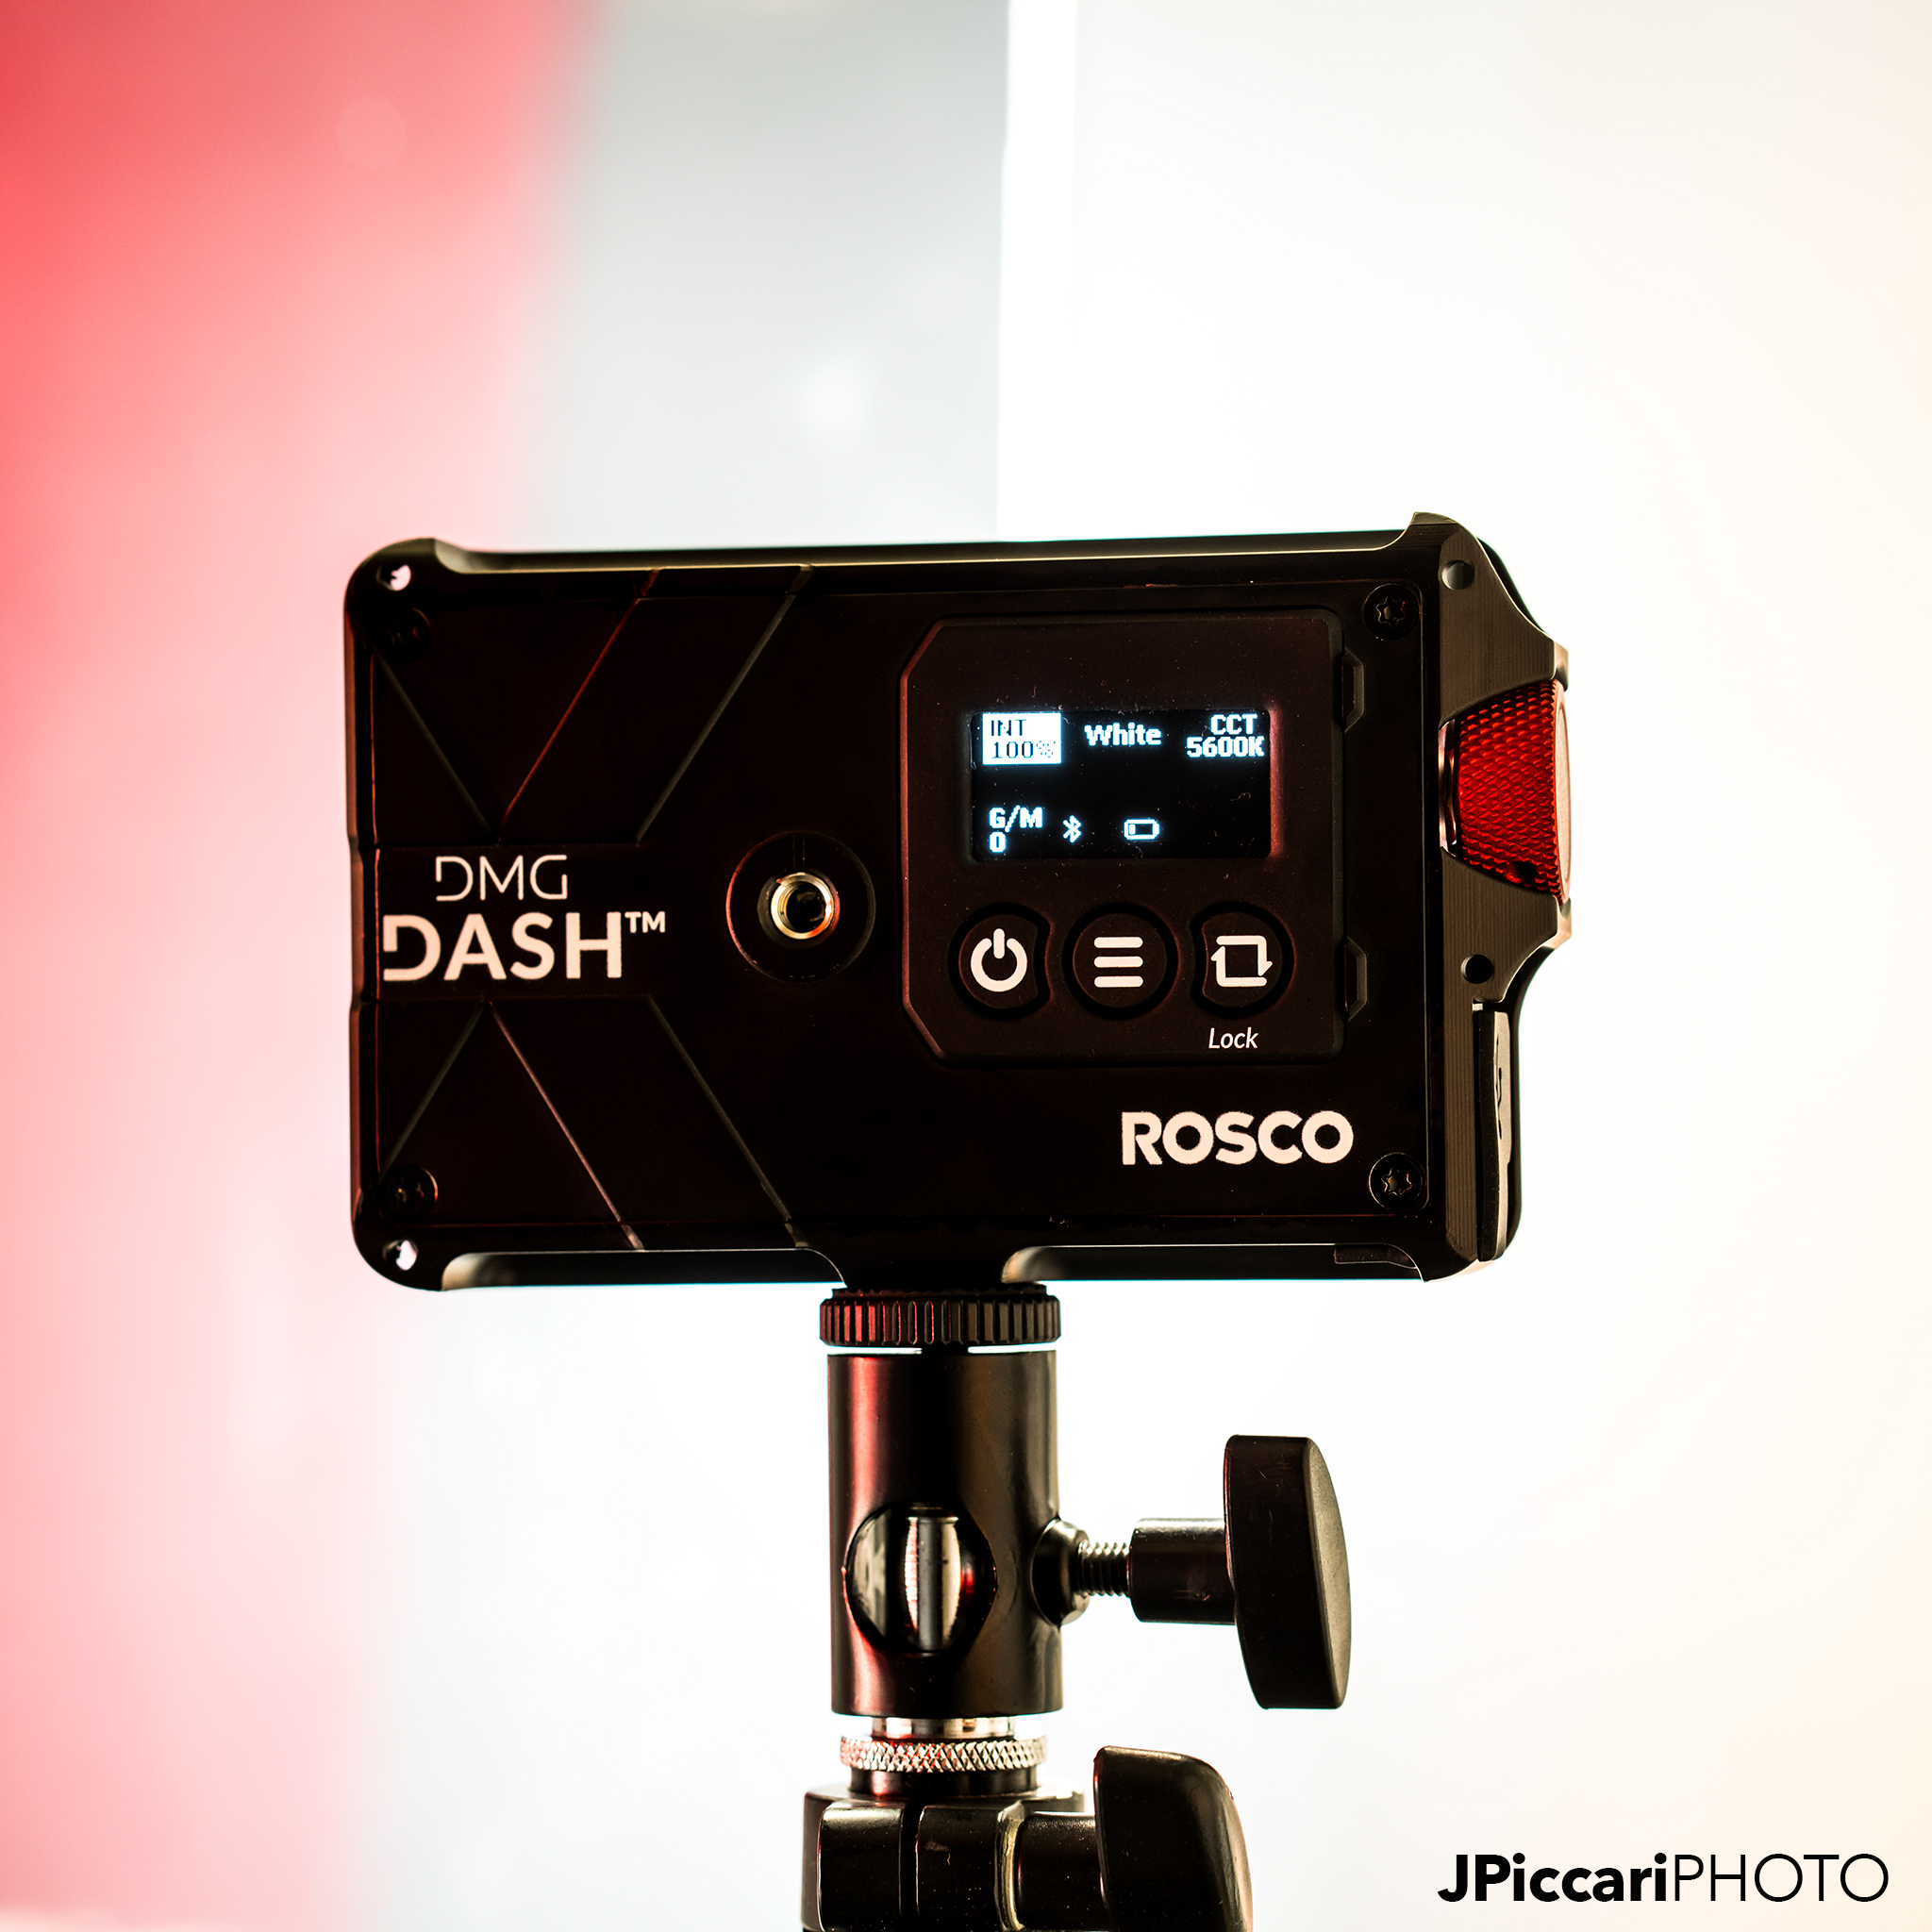 Rosco DASH Light